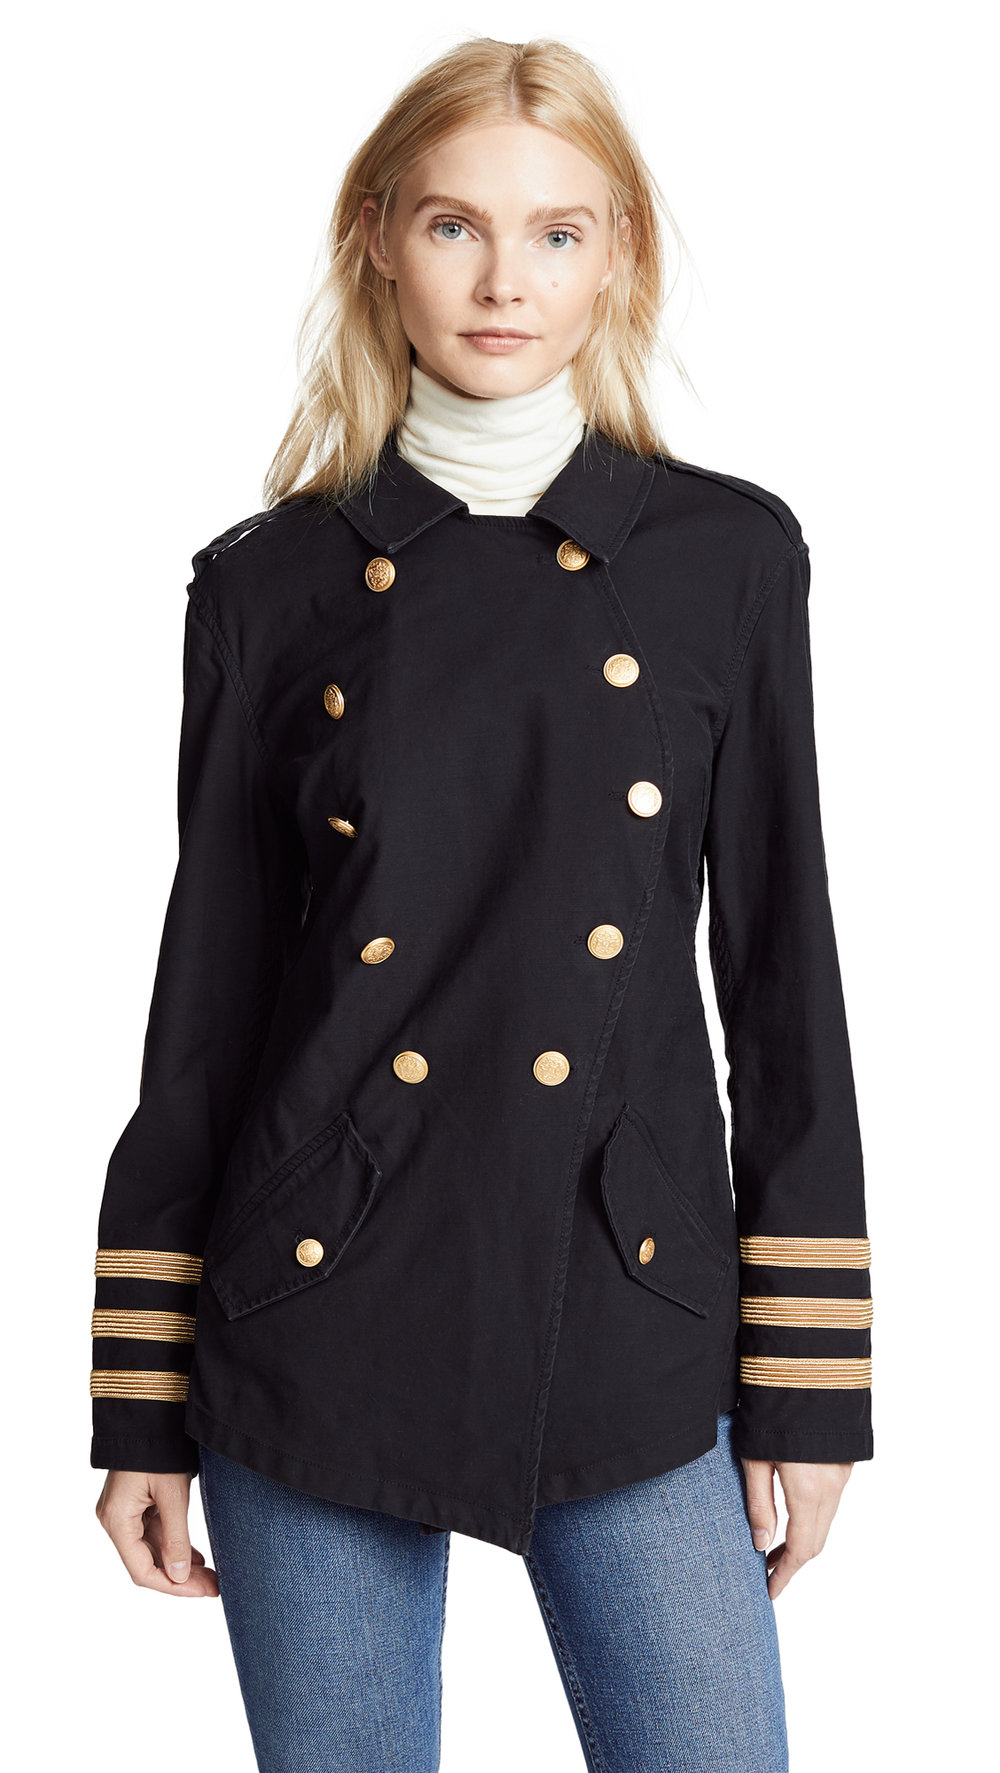 Marissa Webb military jacket